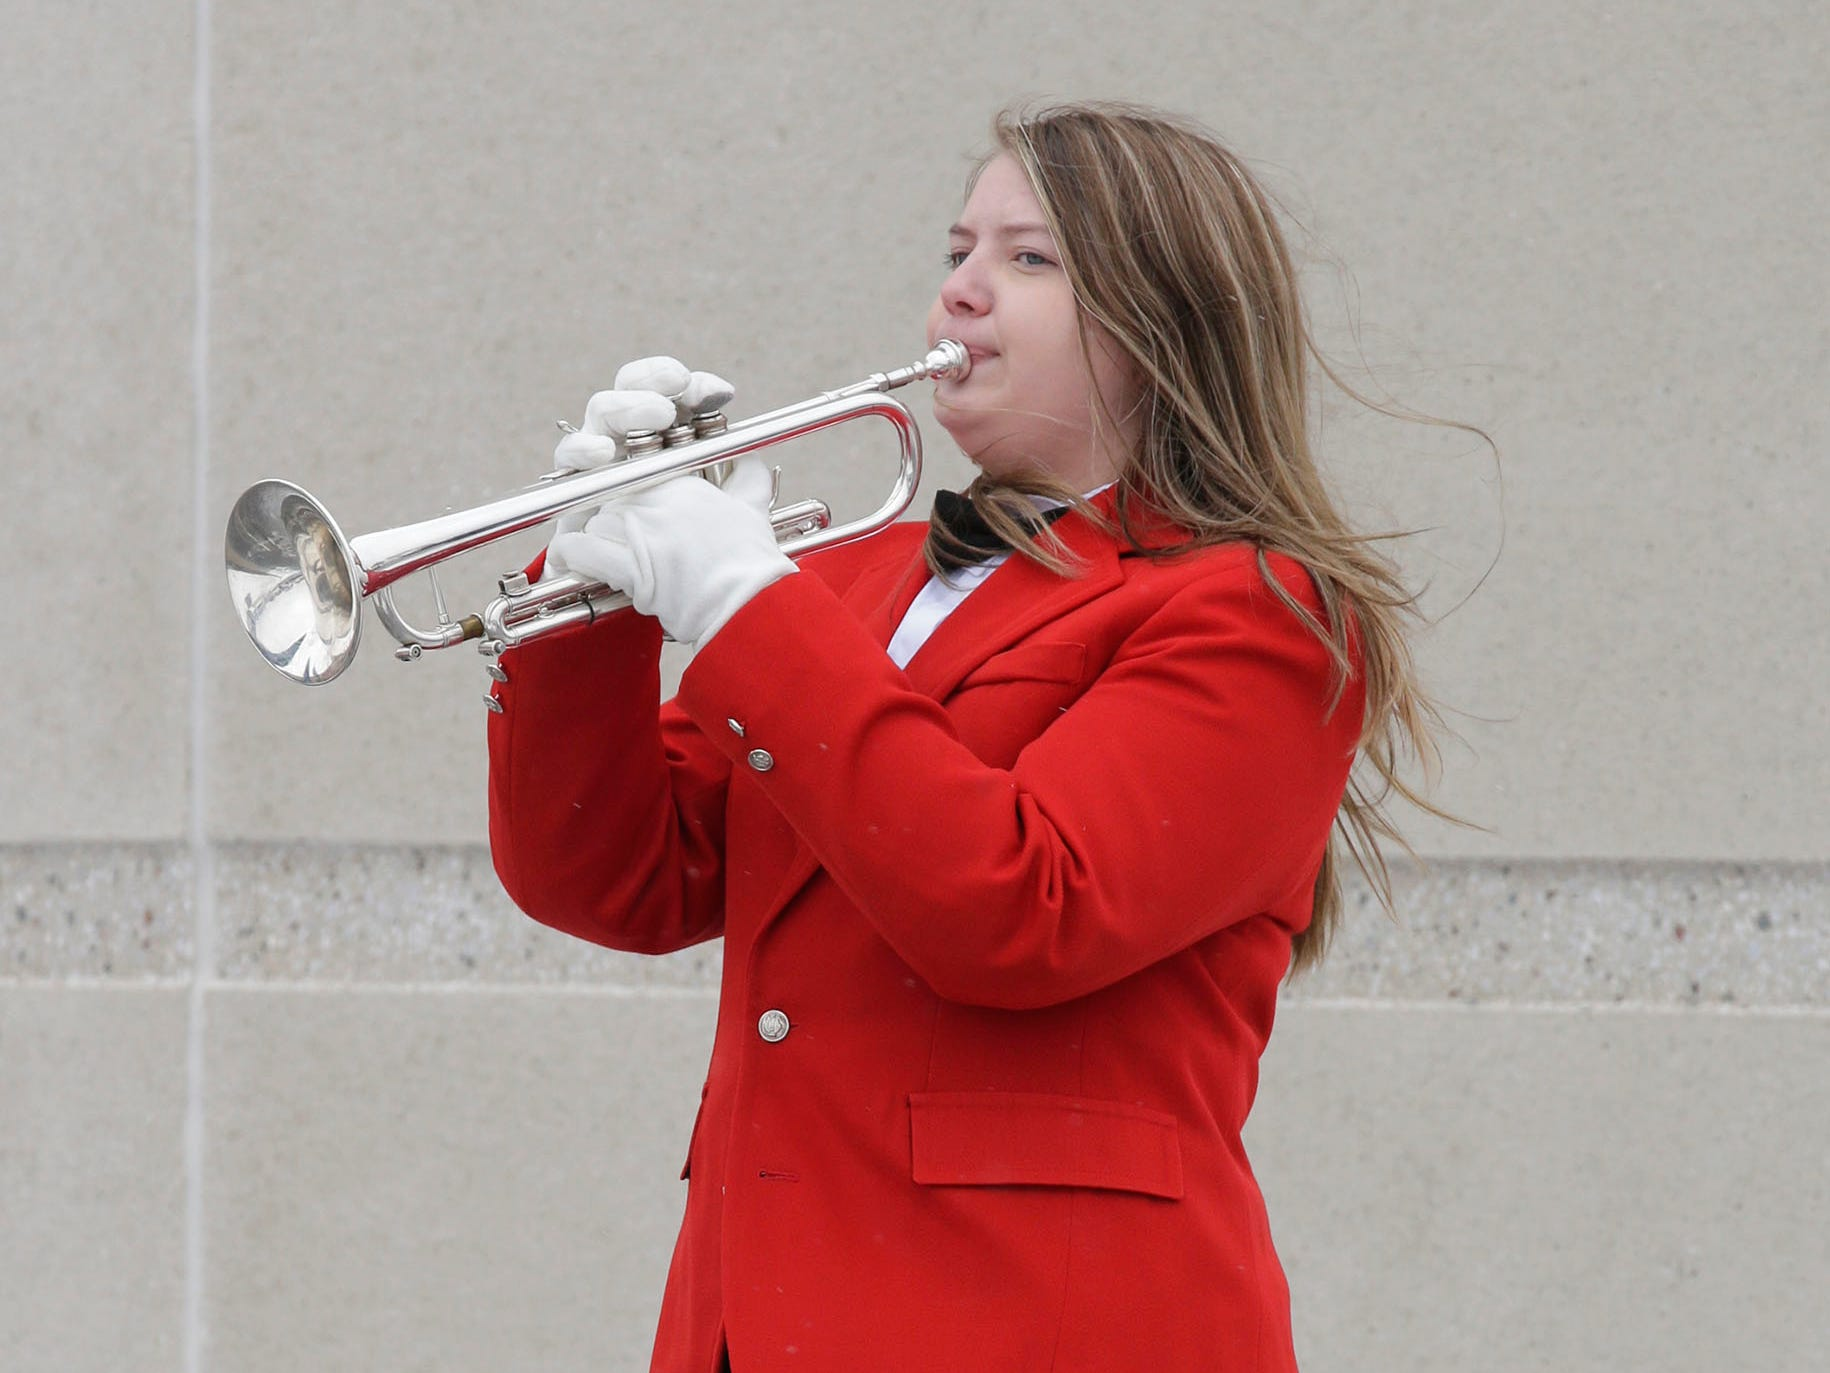 Aliya Hammer performs Taps at the end of the Sheboygan South Veterans Day program, Friday, November 9, 2018, in Sheboygan, Wis.